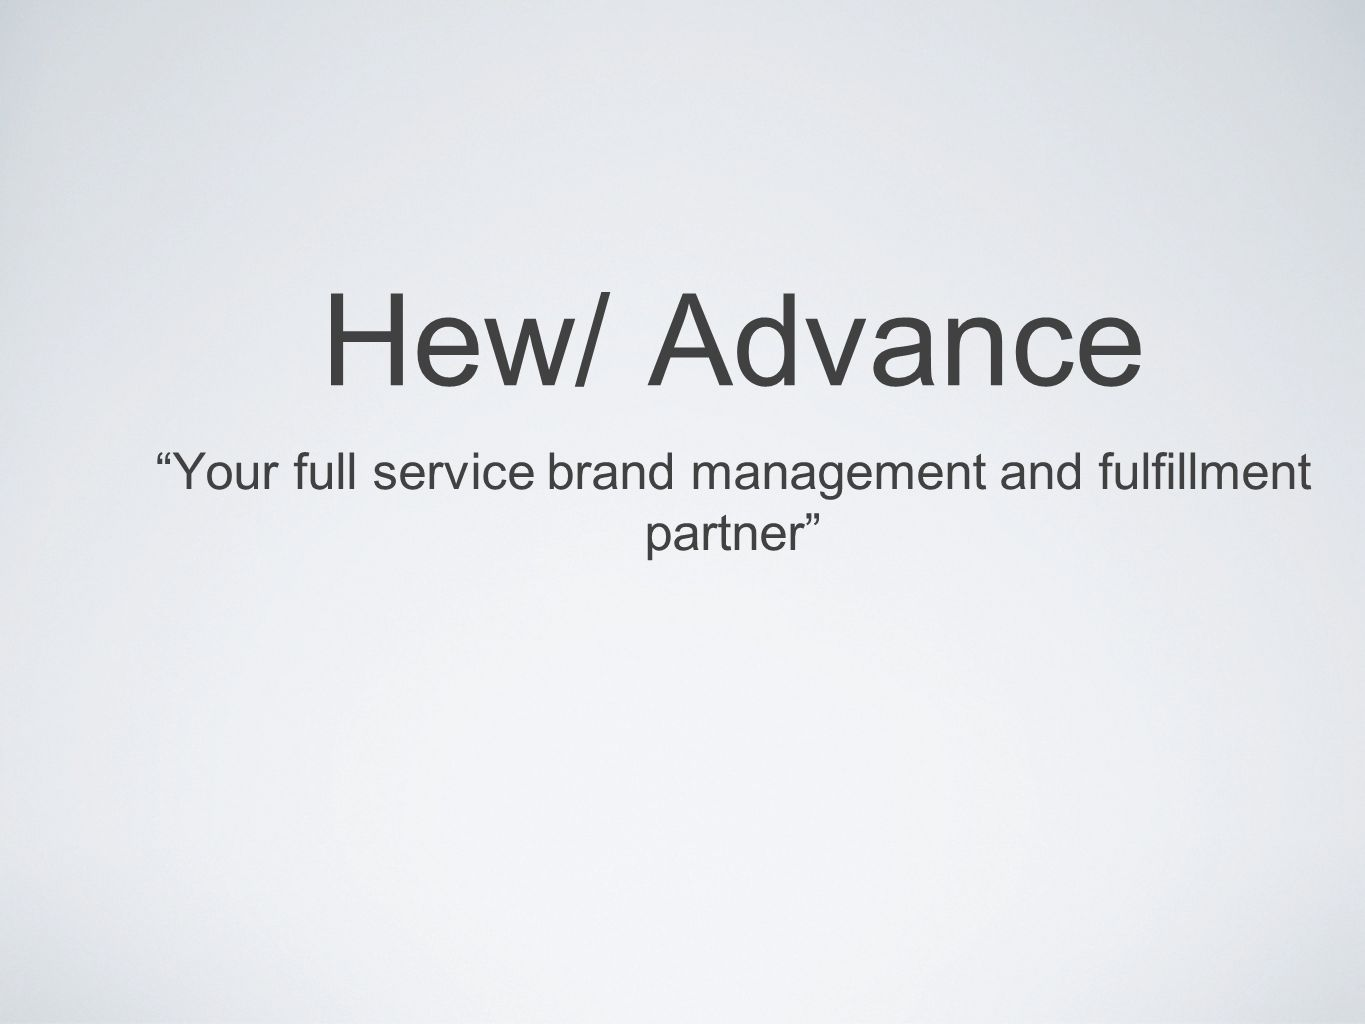 Hew/ Advance Your full service brand management and fulfillment partner